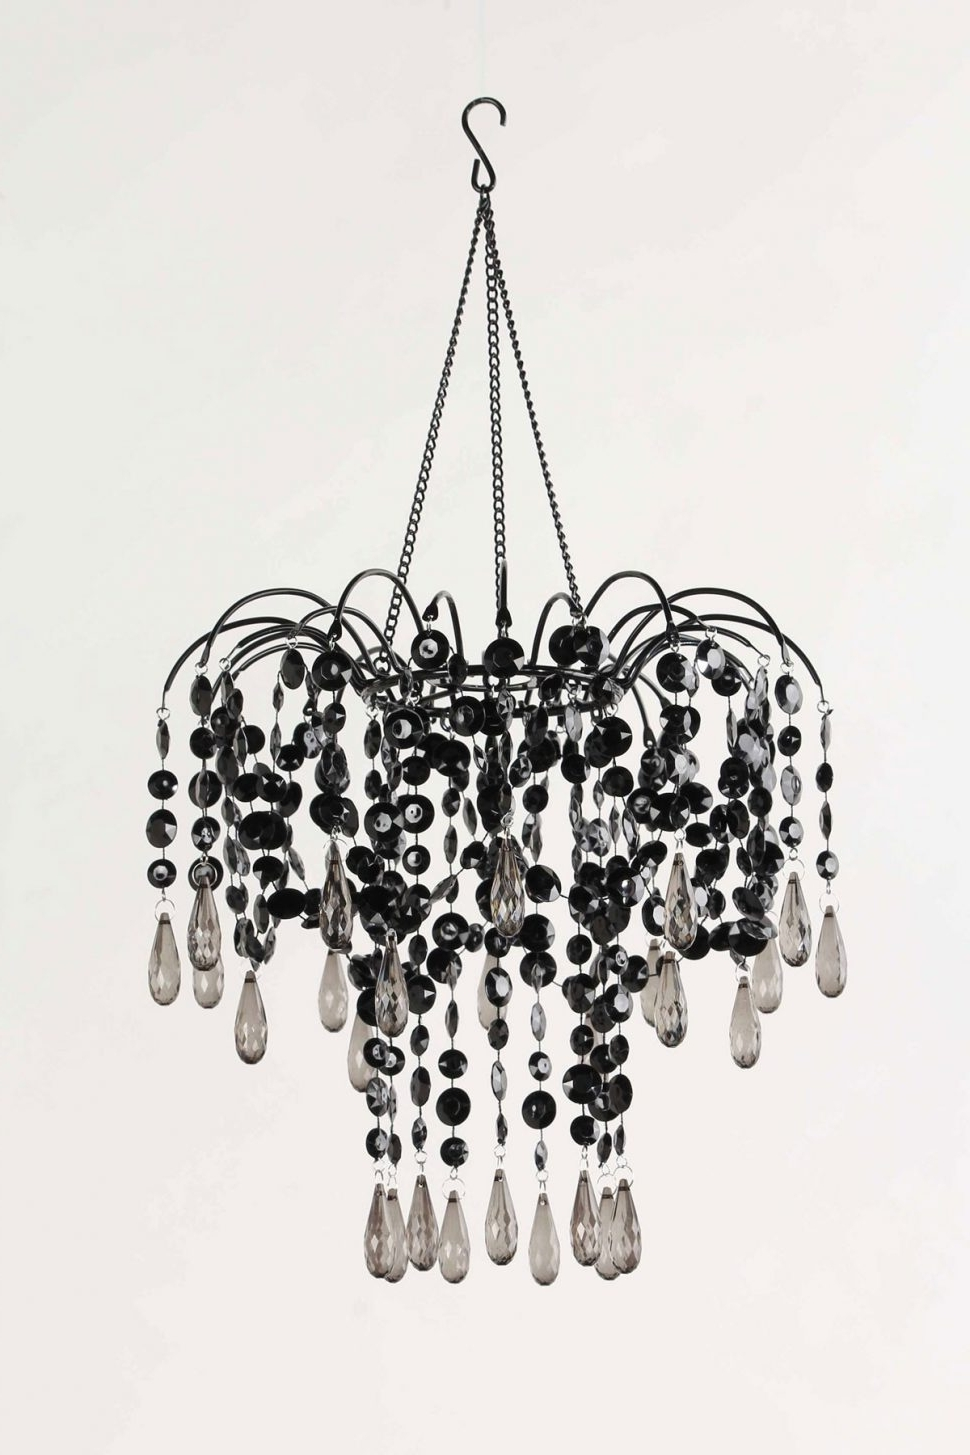 Faux Crystal Chandeliers Within Latest Chandeliers : Faux Crystal Chandelier Up To Date Image Design (View 8 of 15)